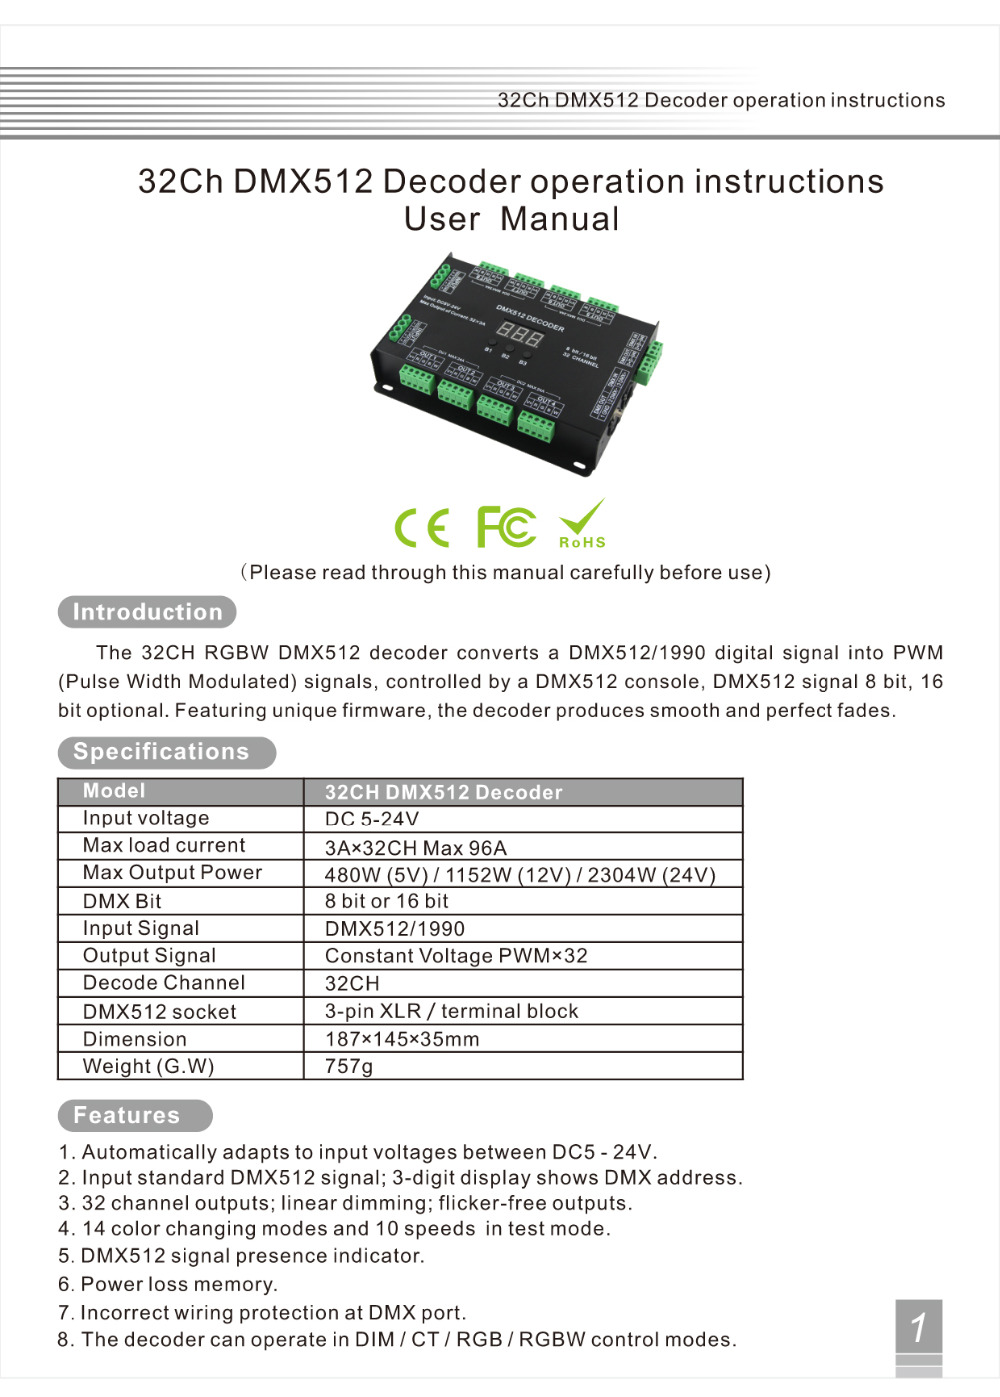 32 Channel 96A RGBW DMX 512 LED Decoder Controller DMX Dimmer DC5 24V RGBW RGB LED light 8 Bit/16 Bit - 2